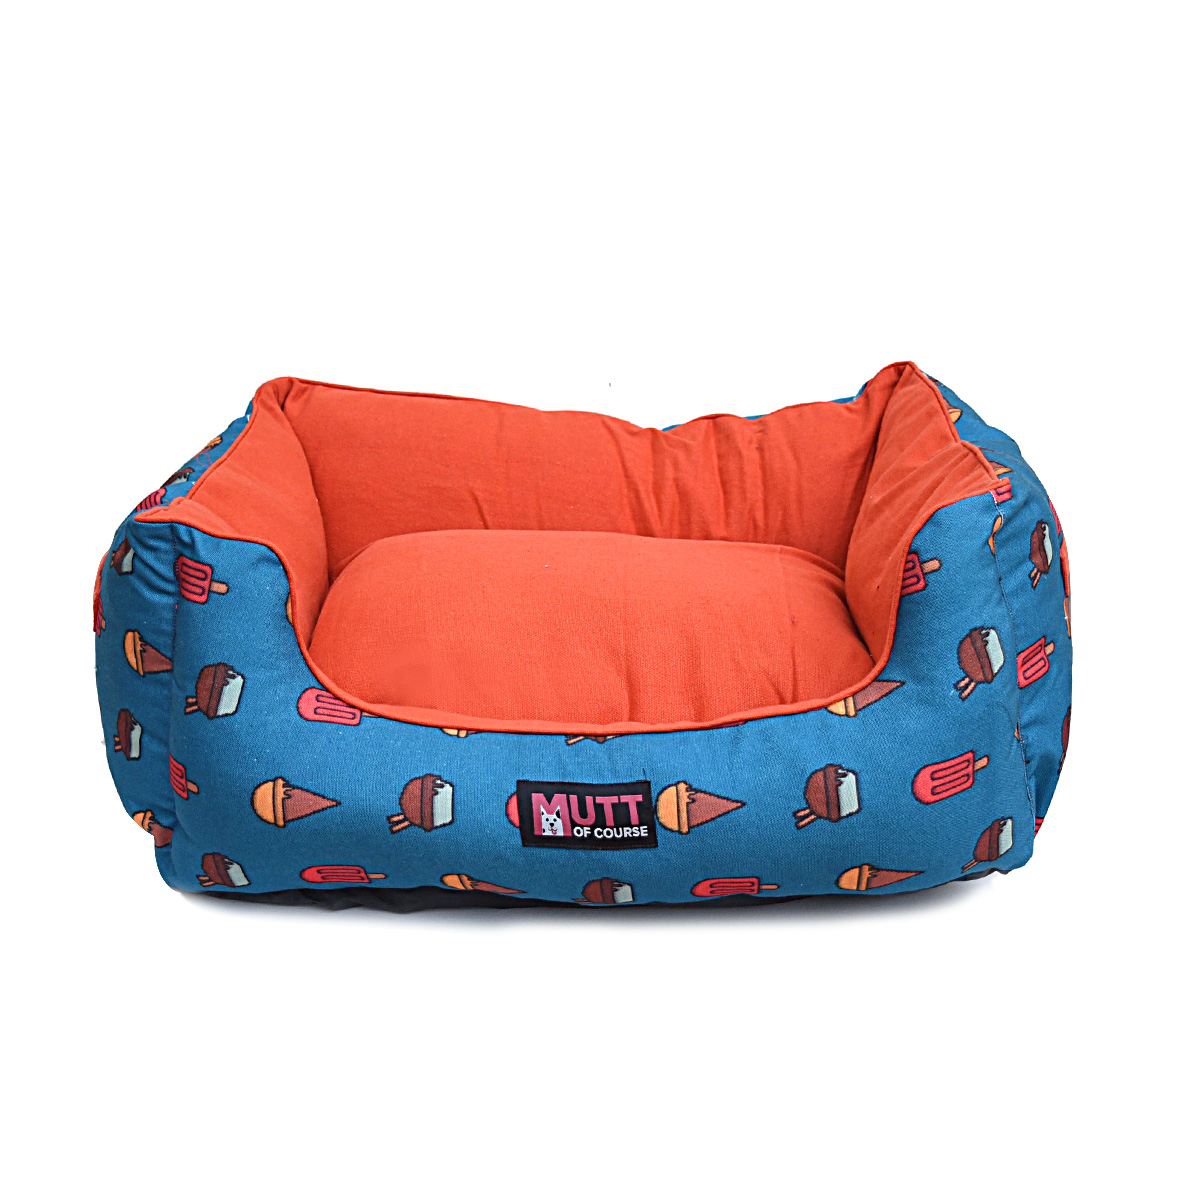 Mutt Of Course Lounger Bed For Dogs - Pupscicles - Small